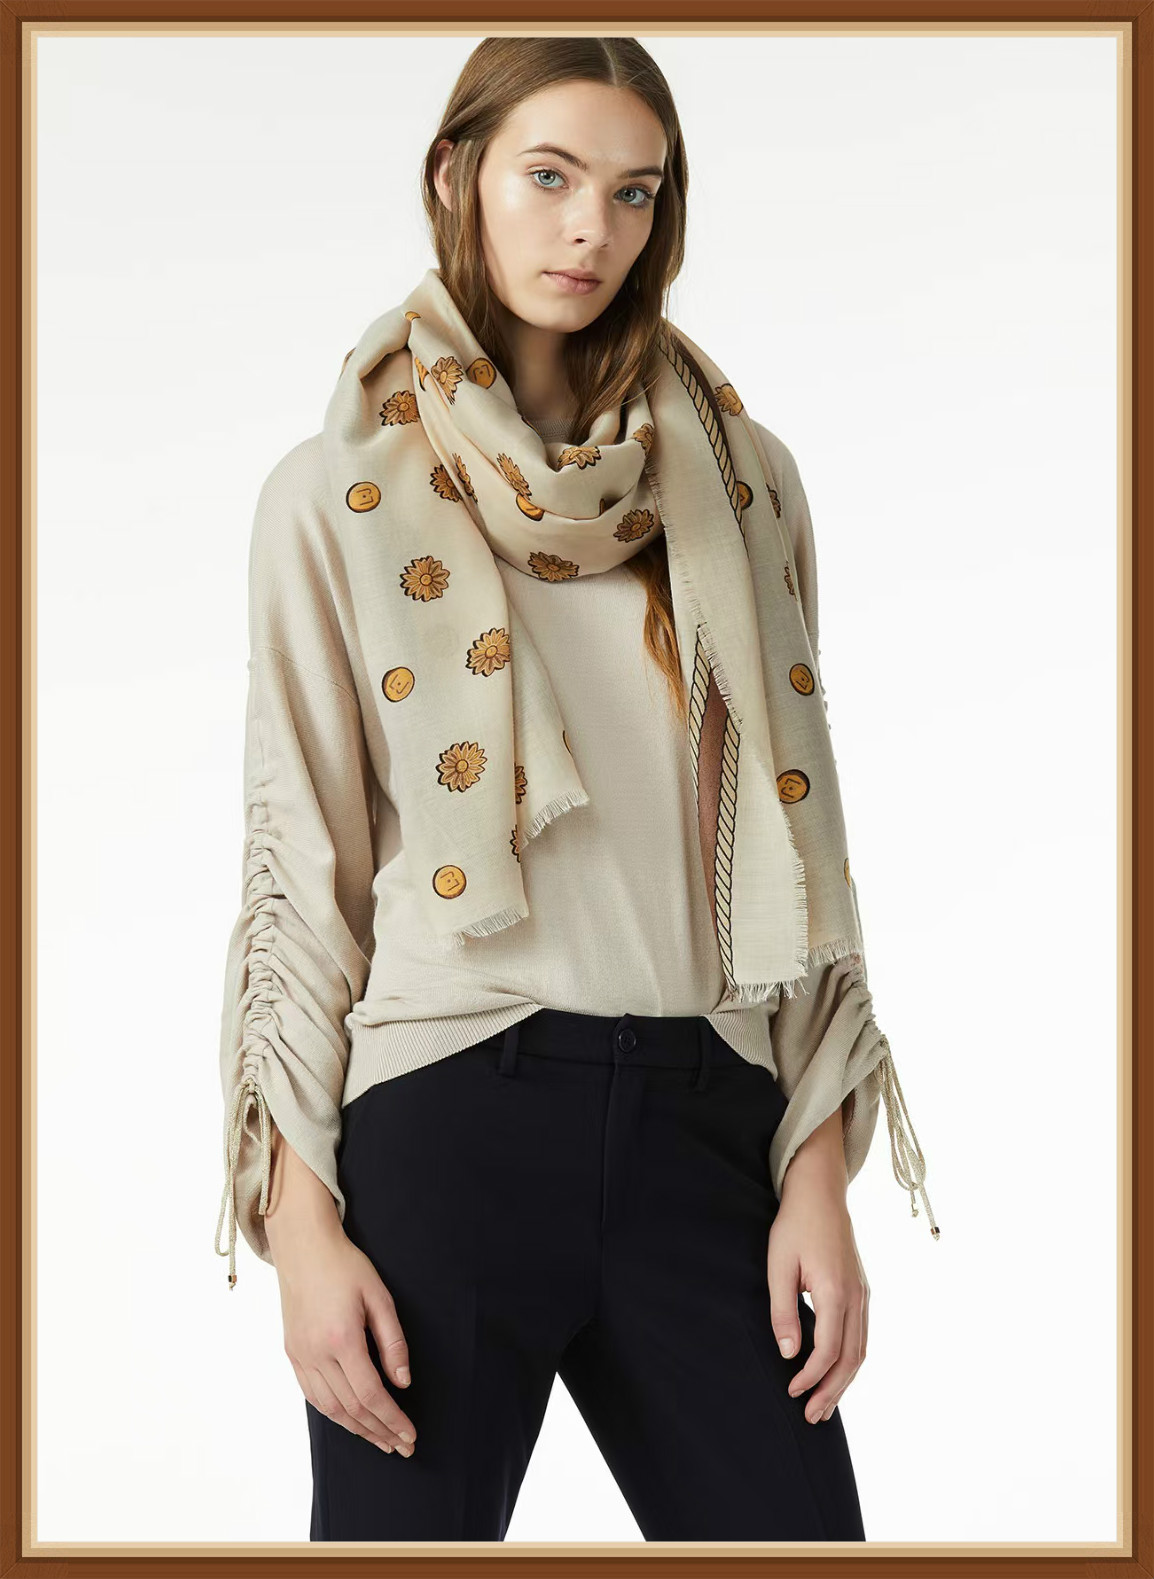 The new Italian luxury women's scarf and shawl, the classic gold chain neck scarf, can be used for both warmth and sun shading